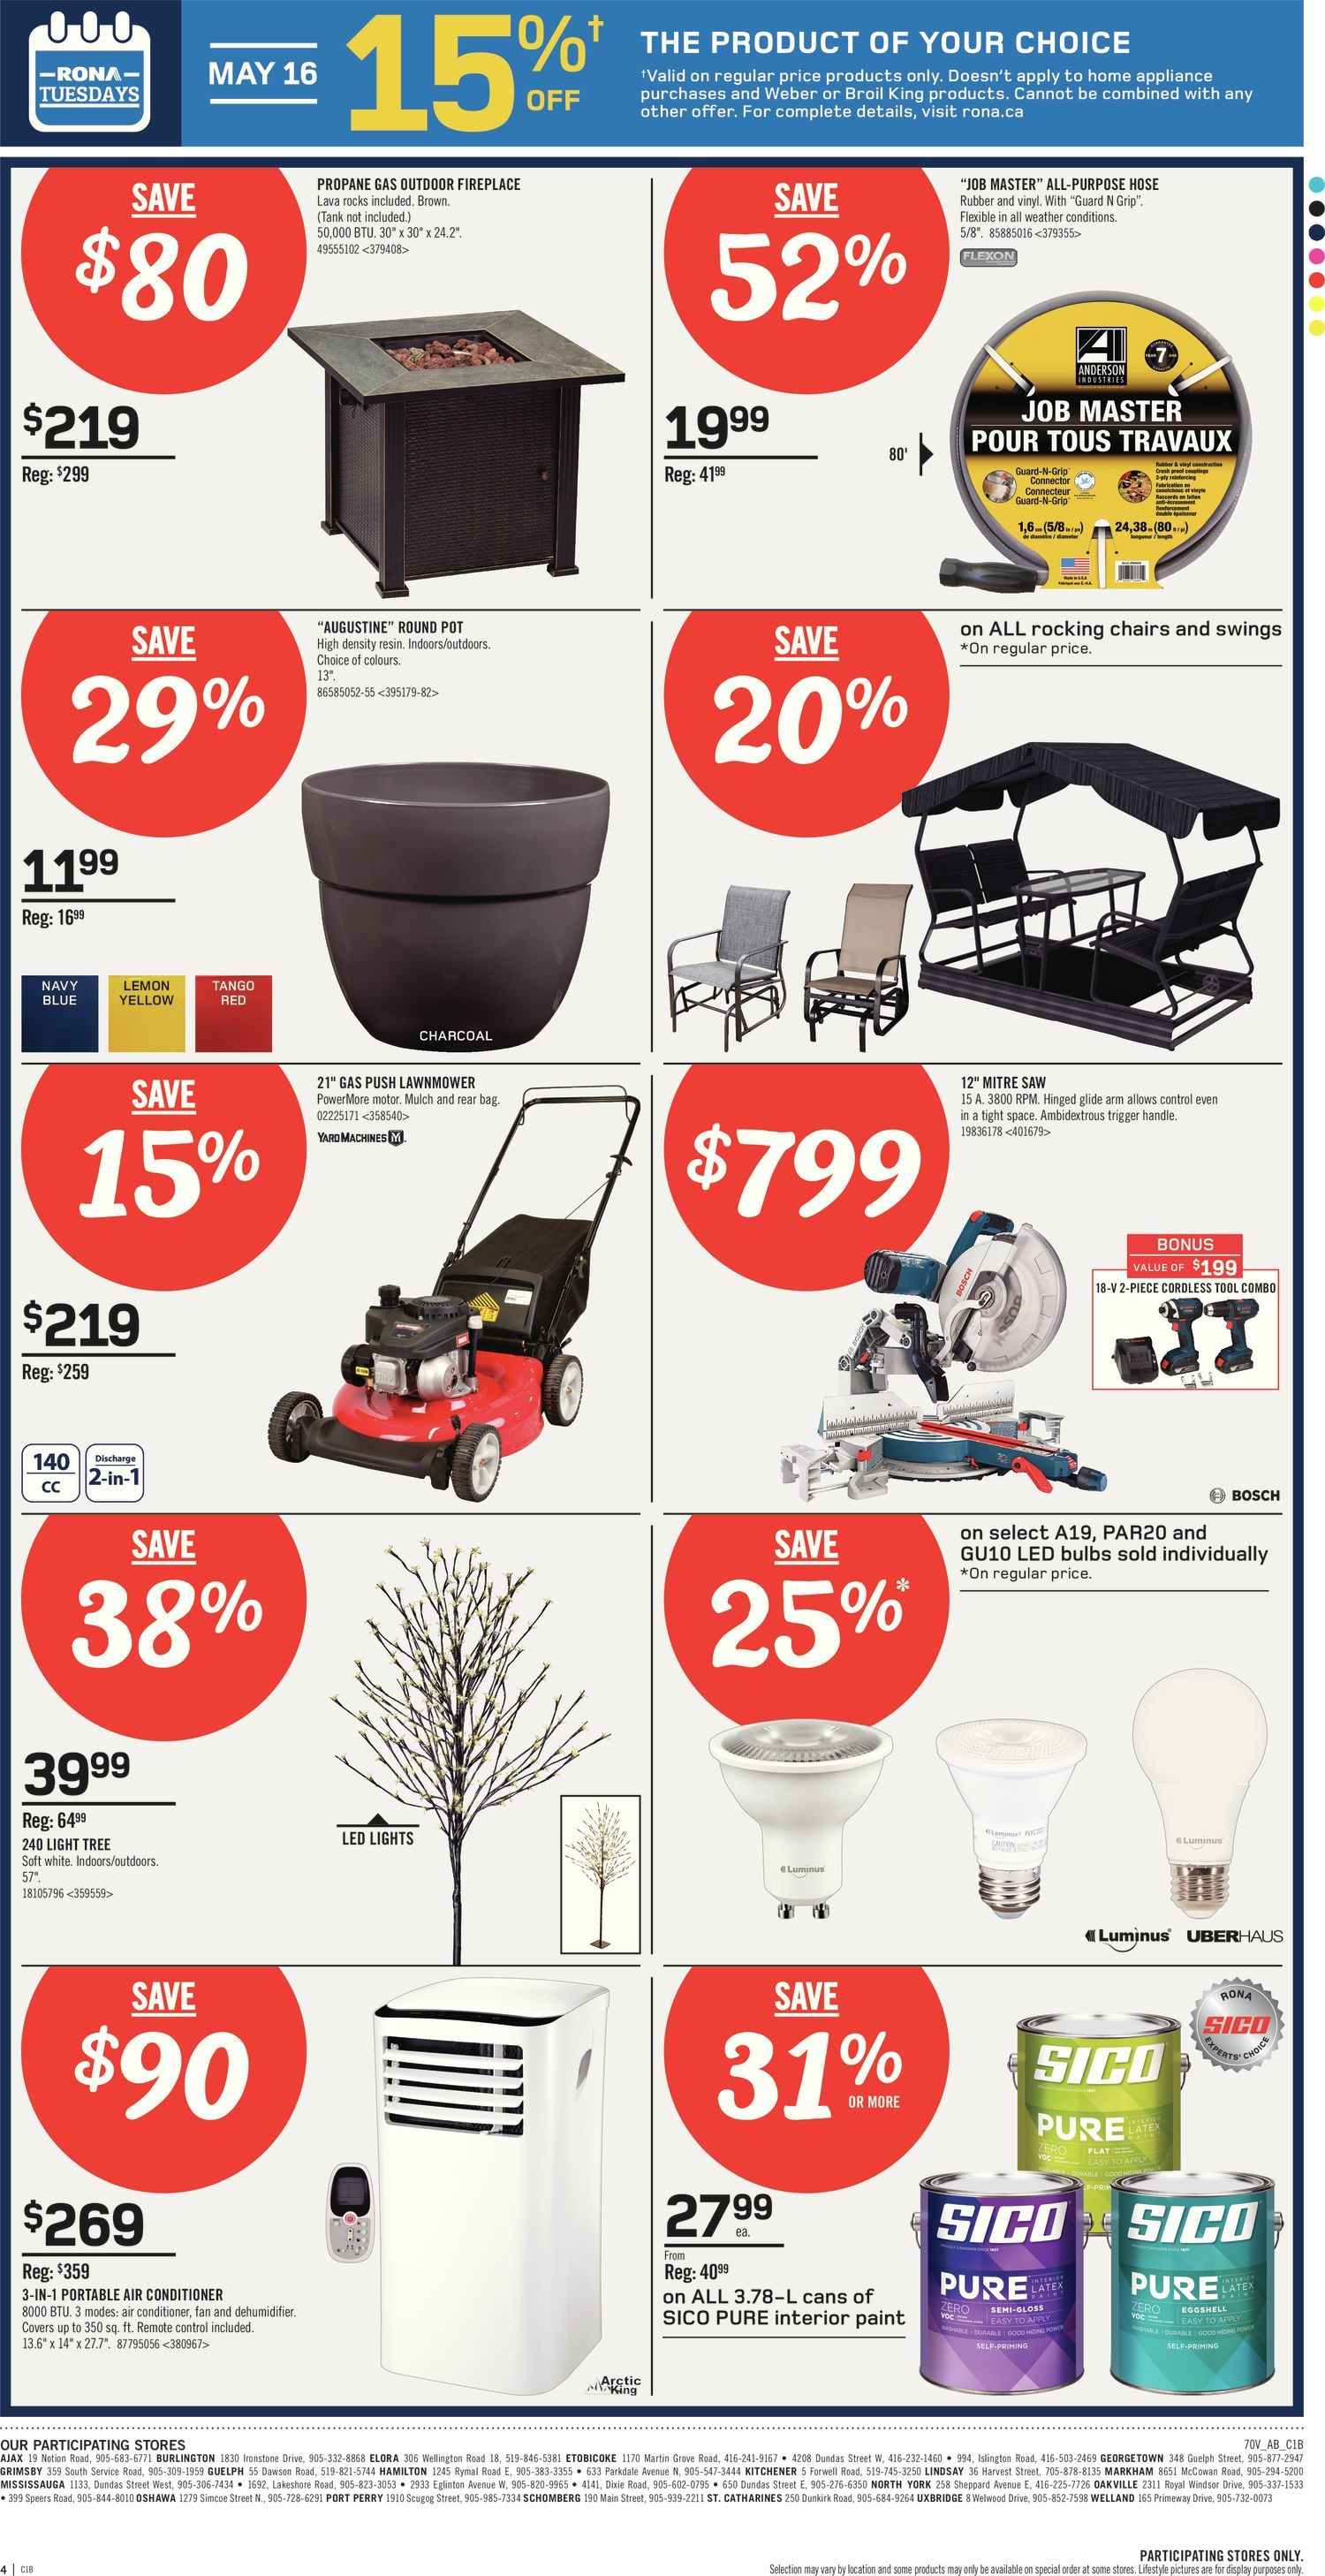 Rona Moving Boxes Rona Weekly Flyer Best Deals Of The Week May 11 17